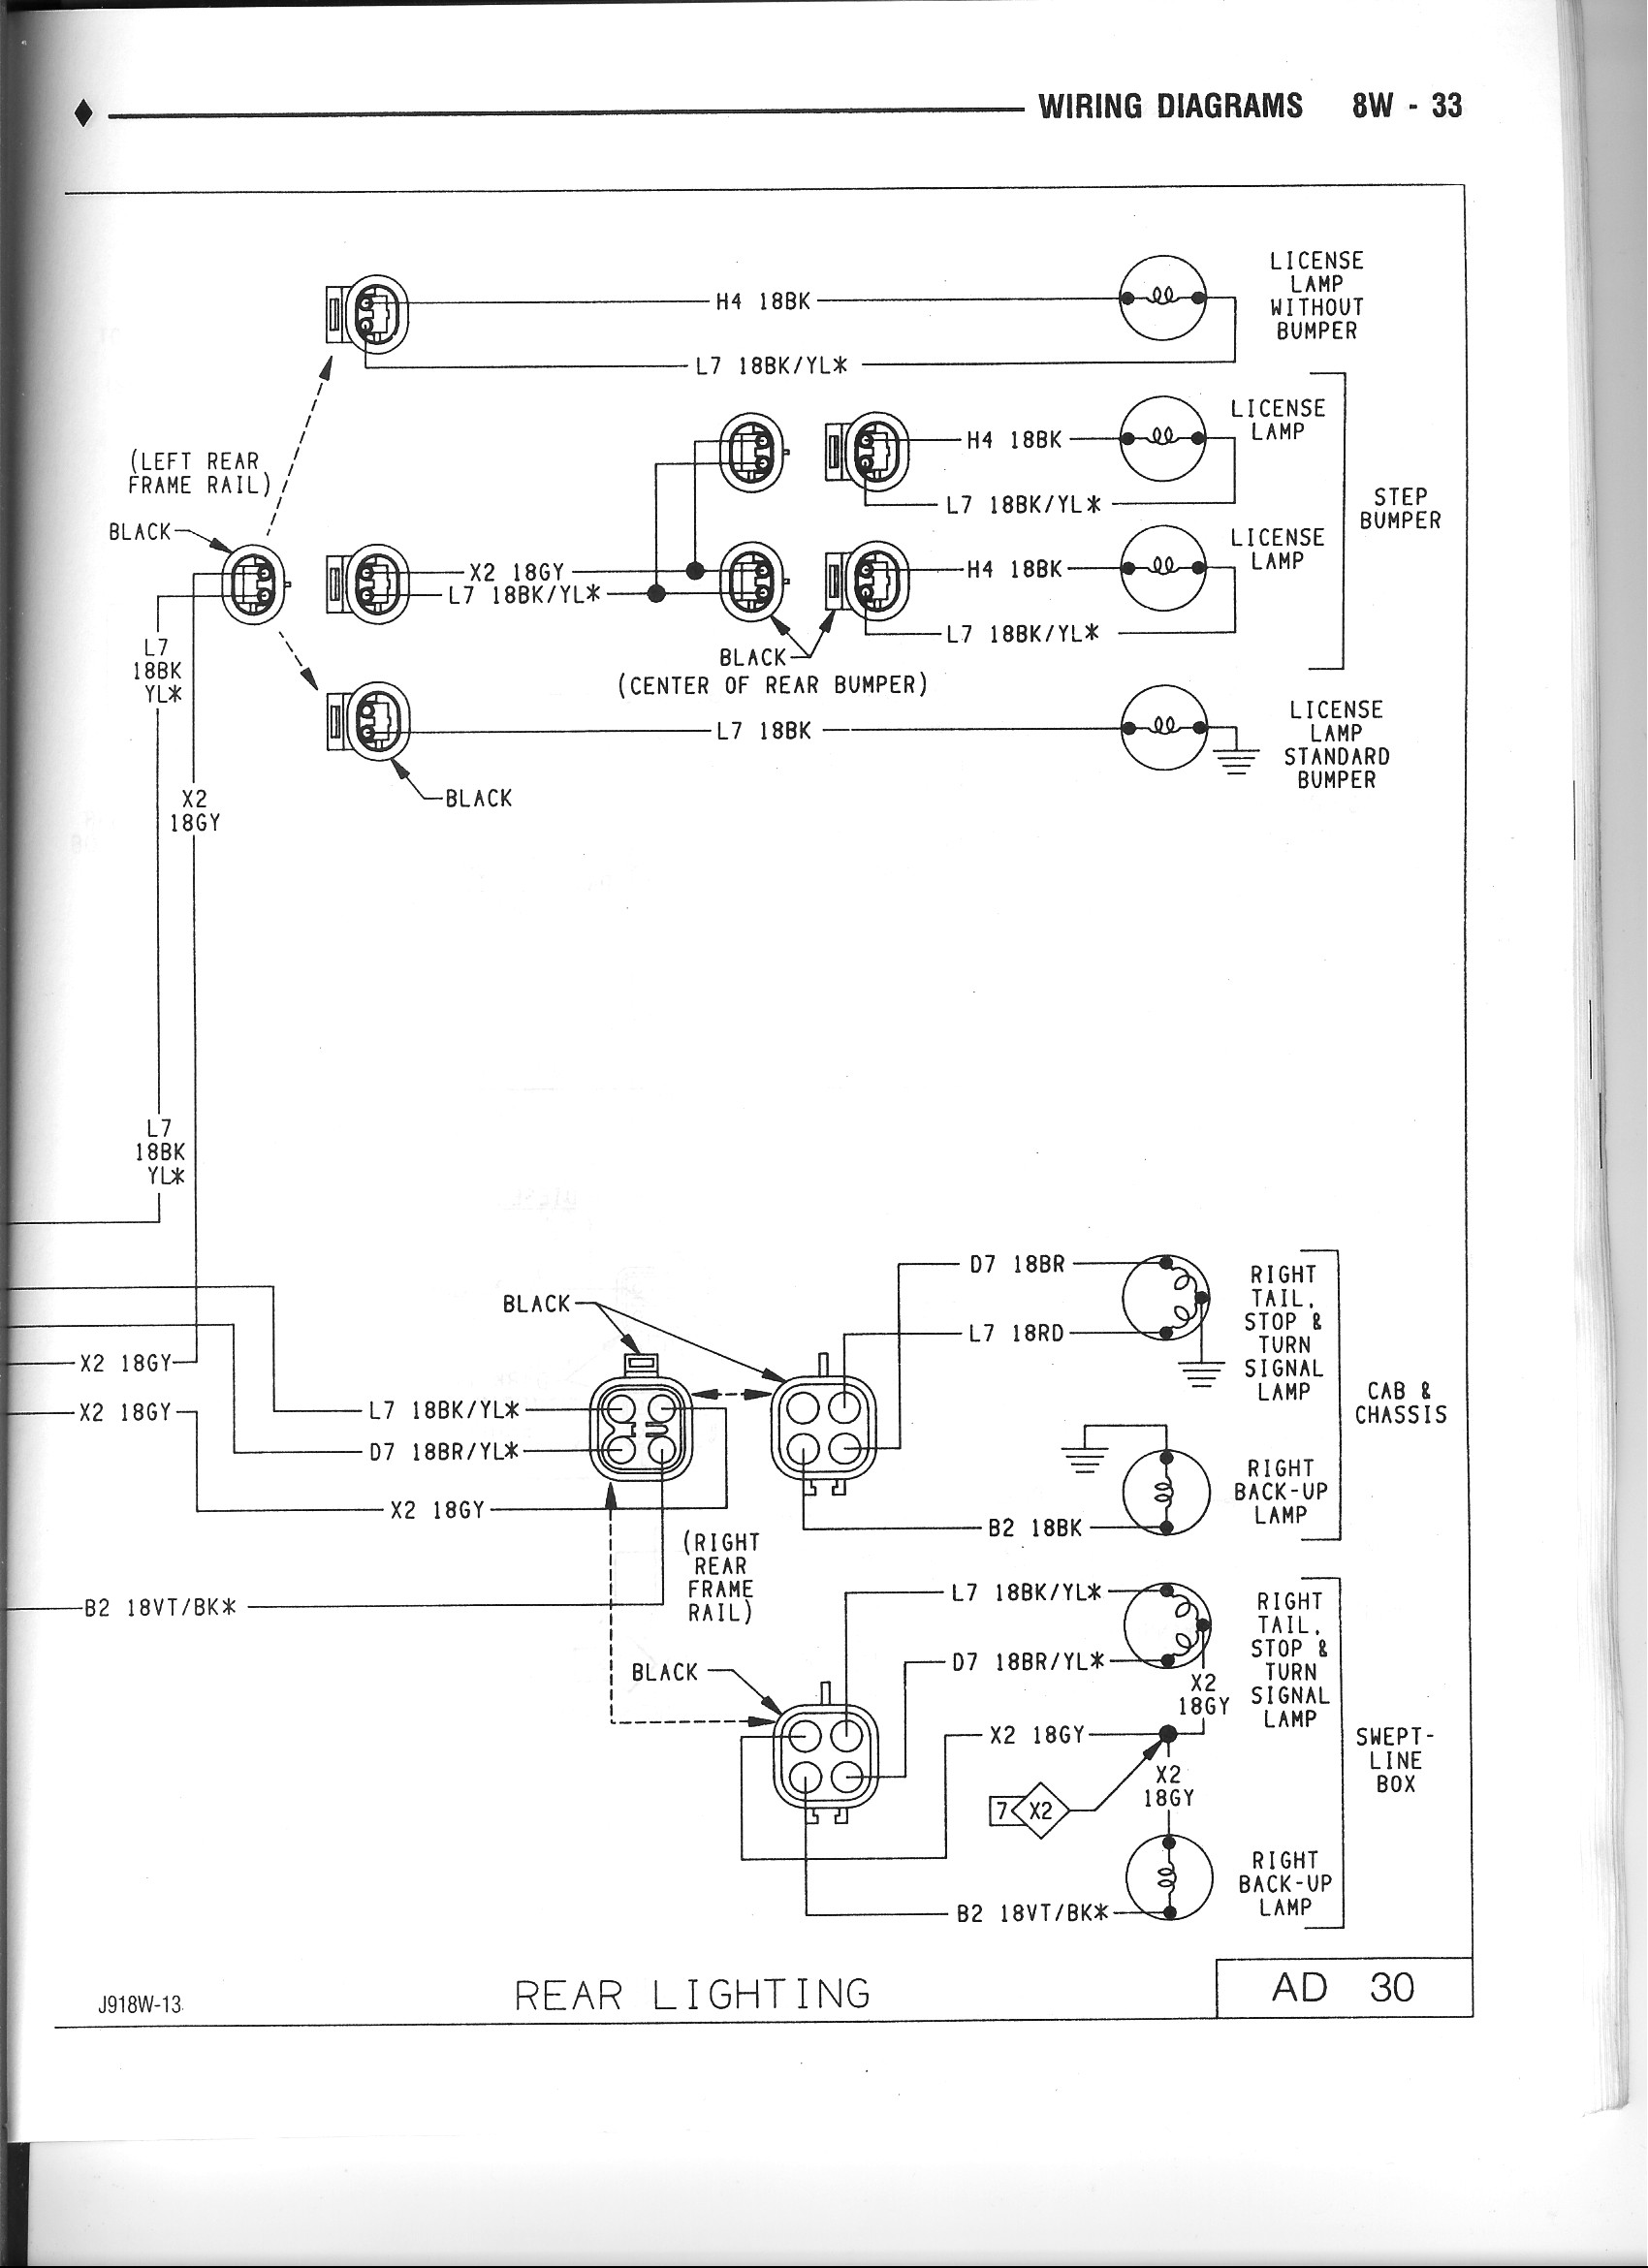 1990 Dodge Tail Light Wiring Diagram - Electrical Drawing Wiring ...